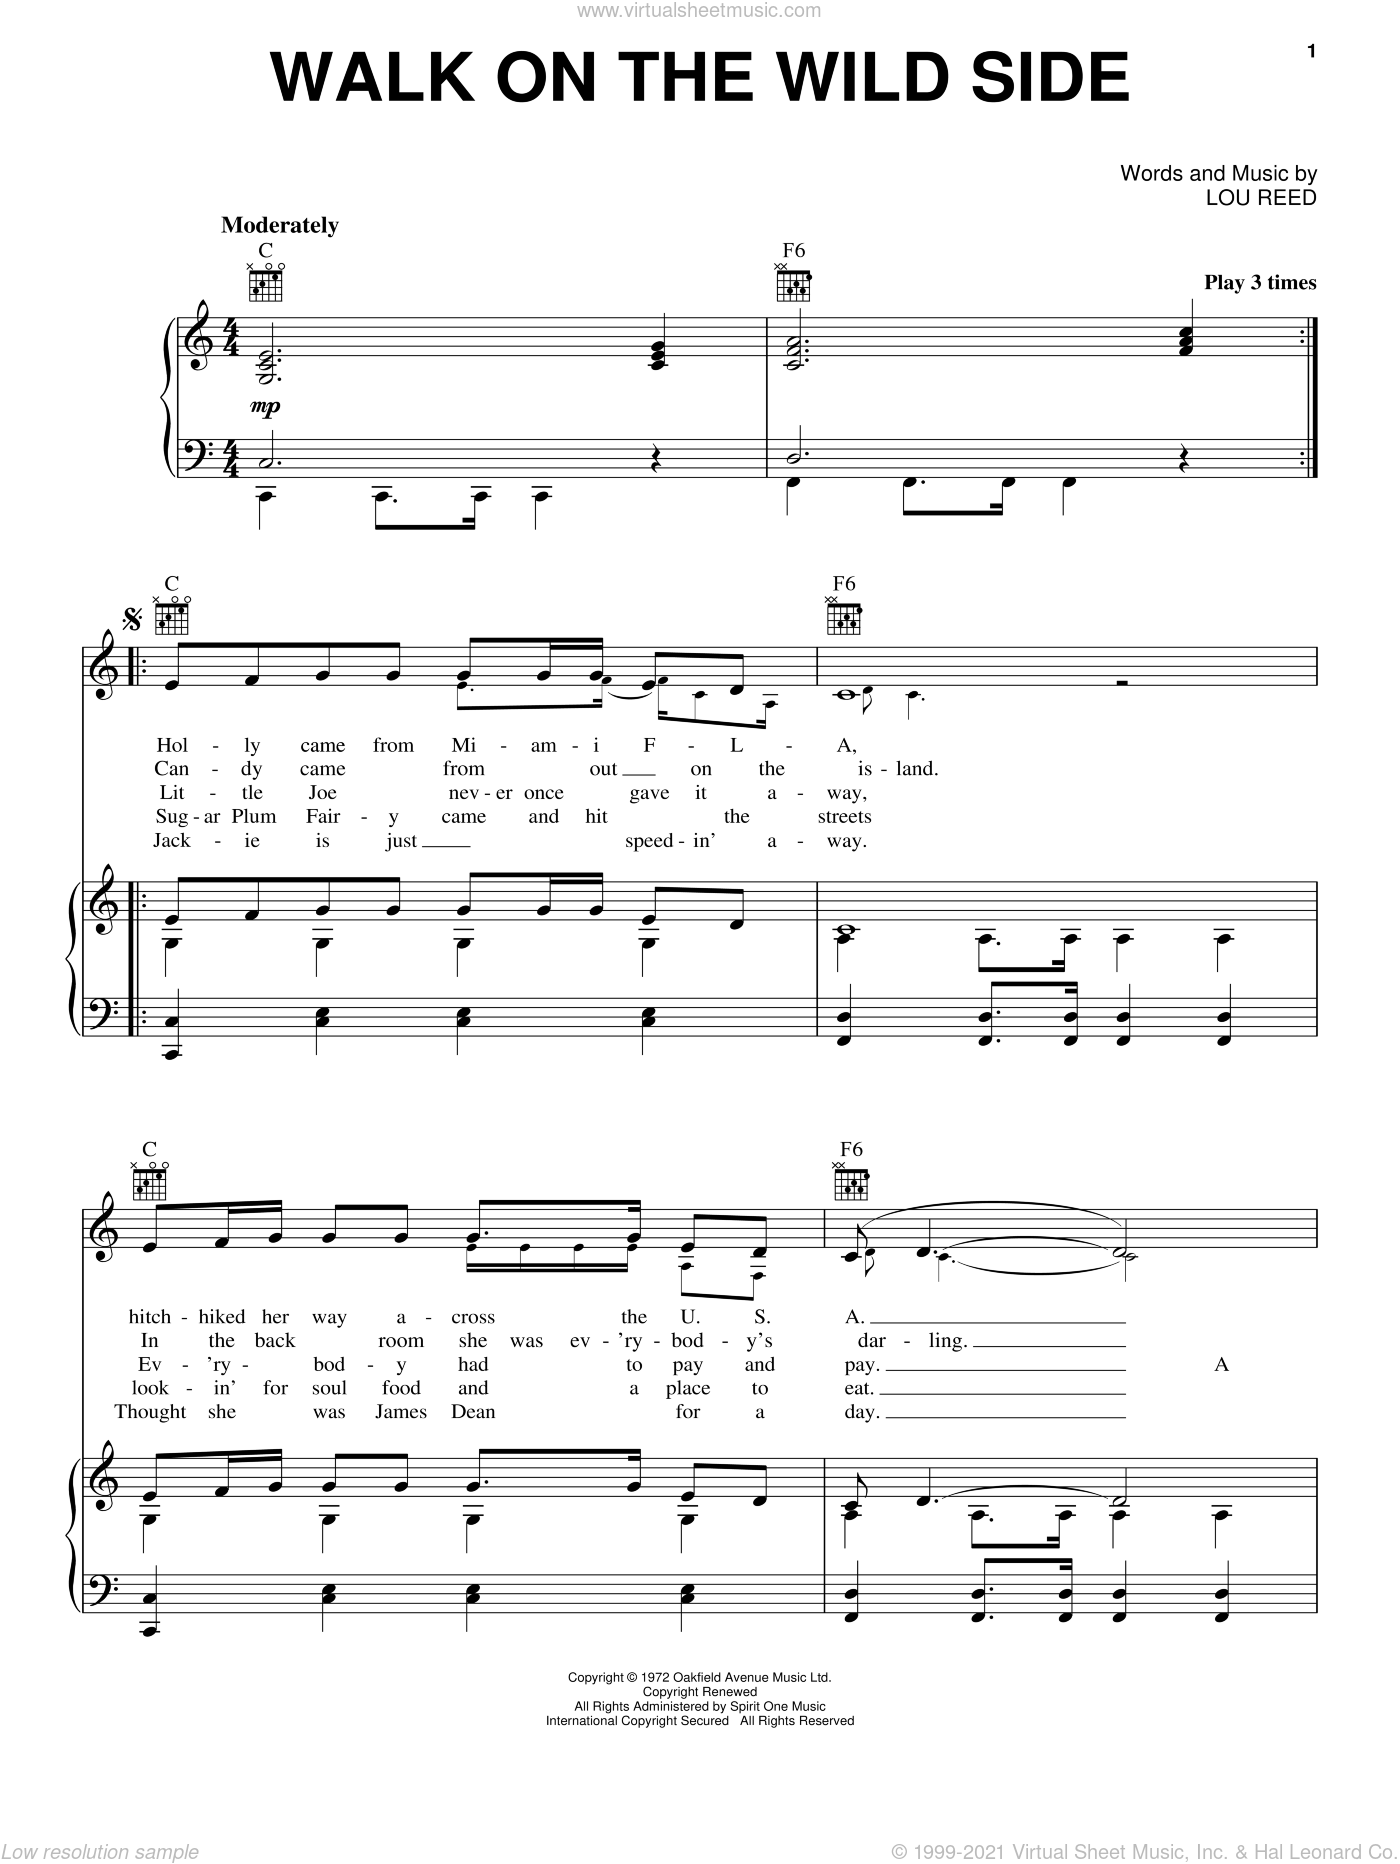 Reed - Walk On The Wild Side sheet music for voice, piano or guitar